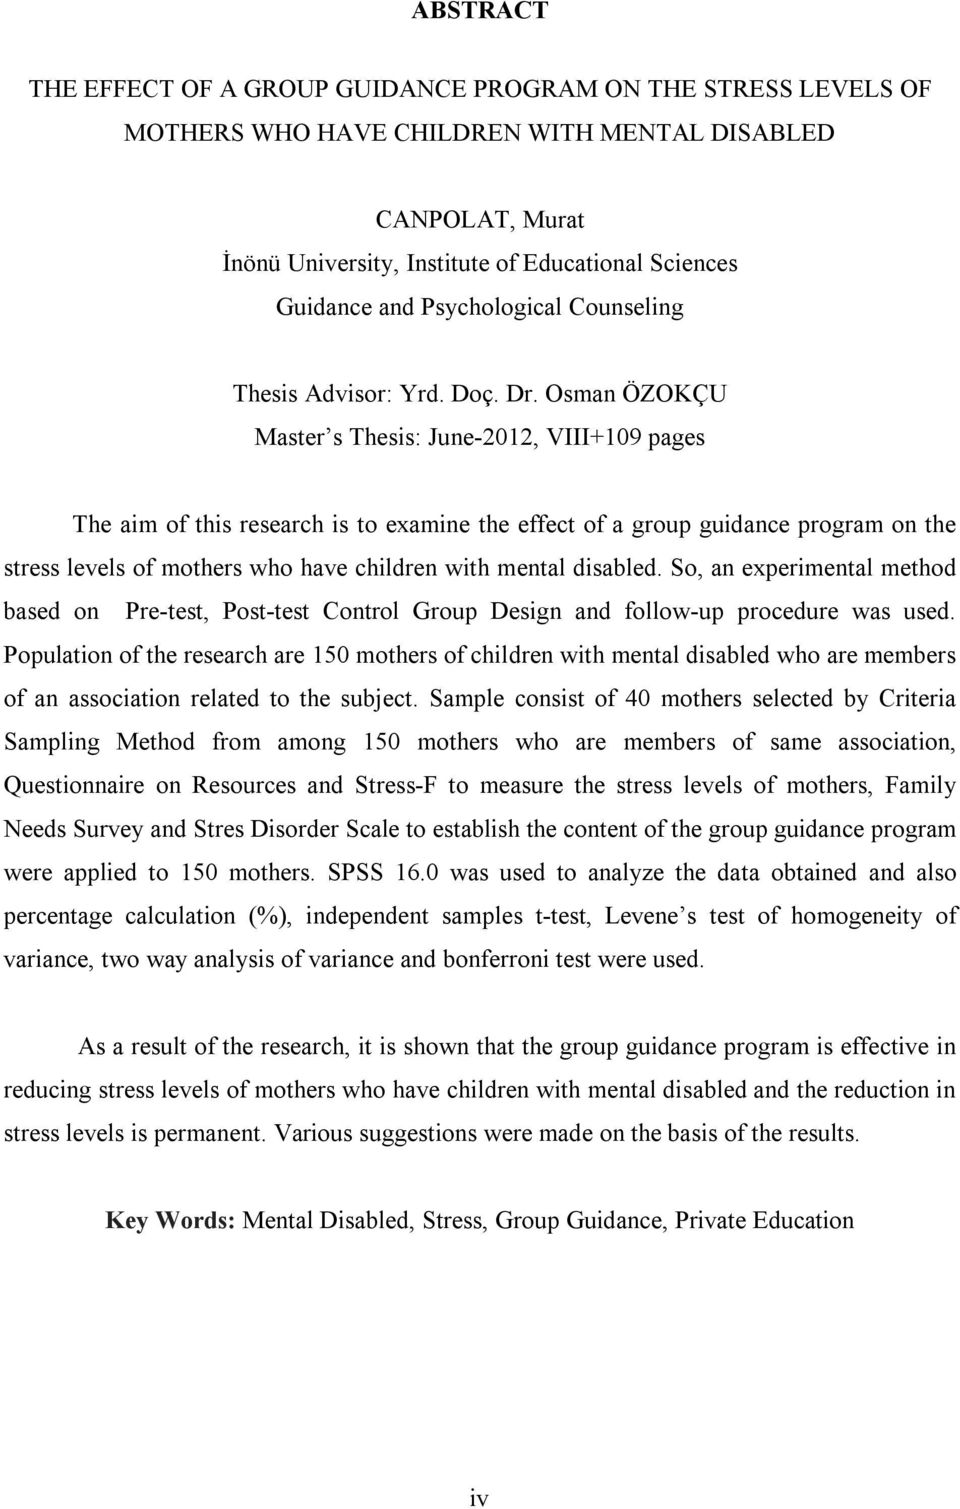 Osman ÖZOKÇU Master s Thesis: June-2012, VIII+109 pages The aim of this research is to examine the effect of a group guidance program on the stress levels of mothers who have children with mental